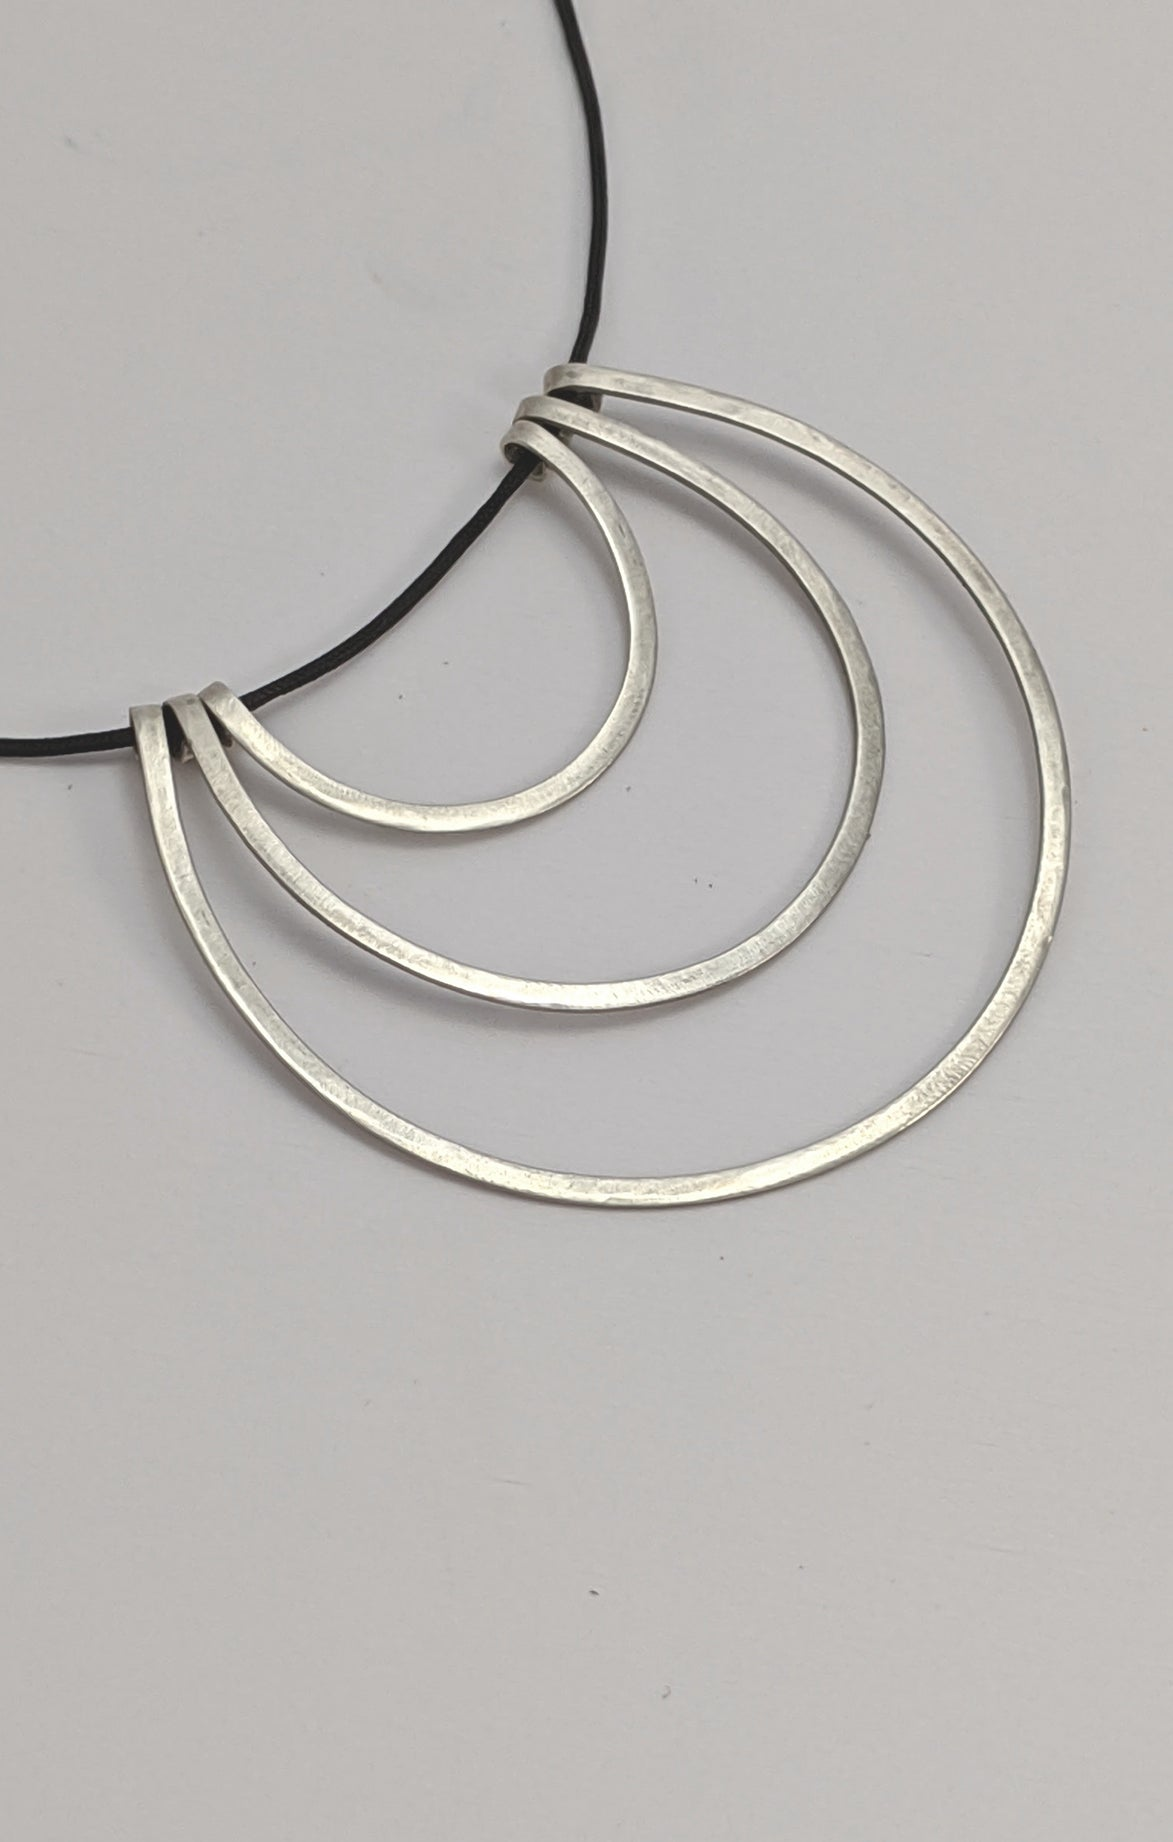 The Minimalist 3 Silver Necklace